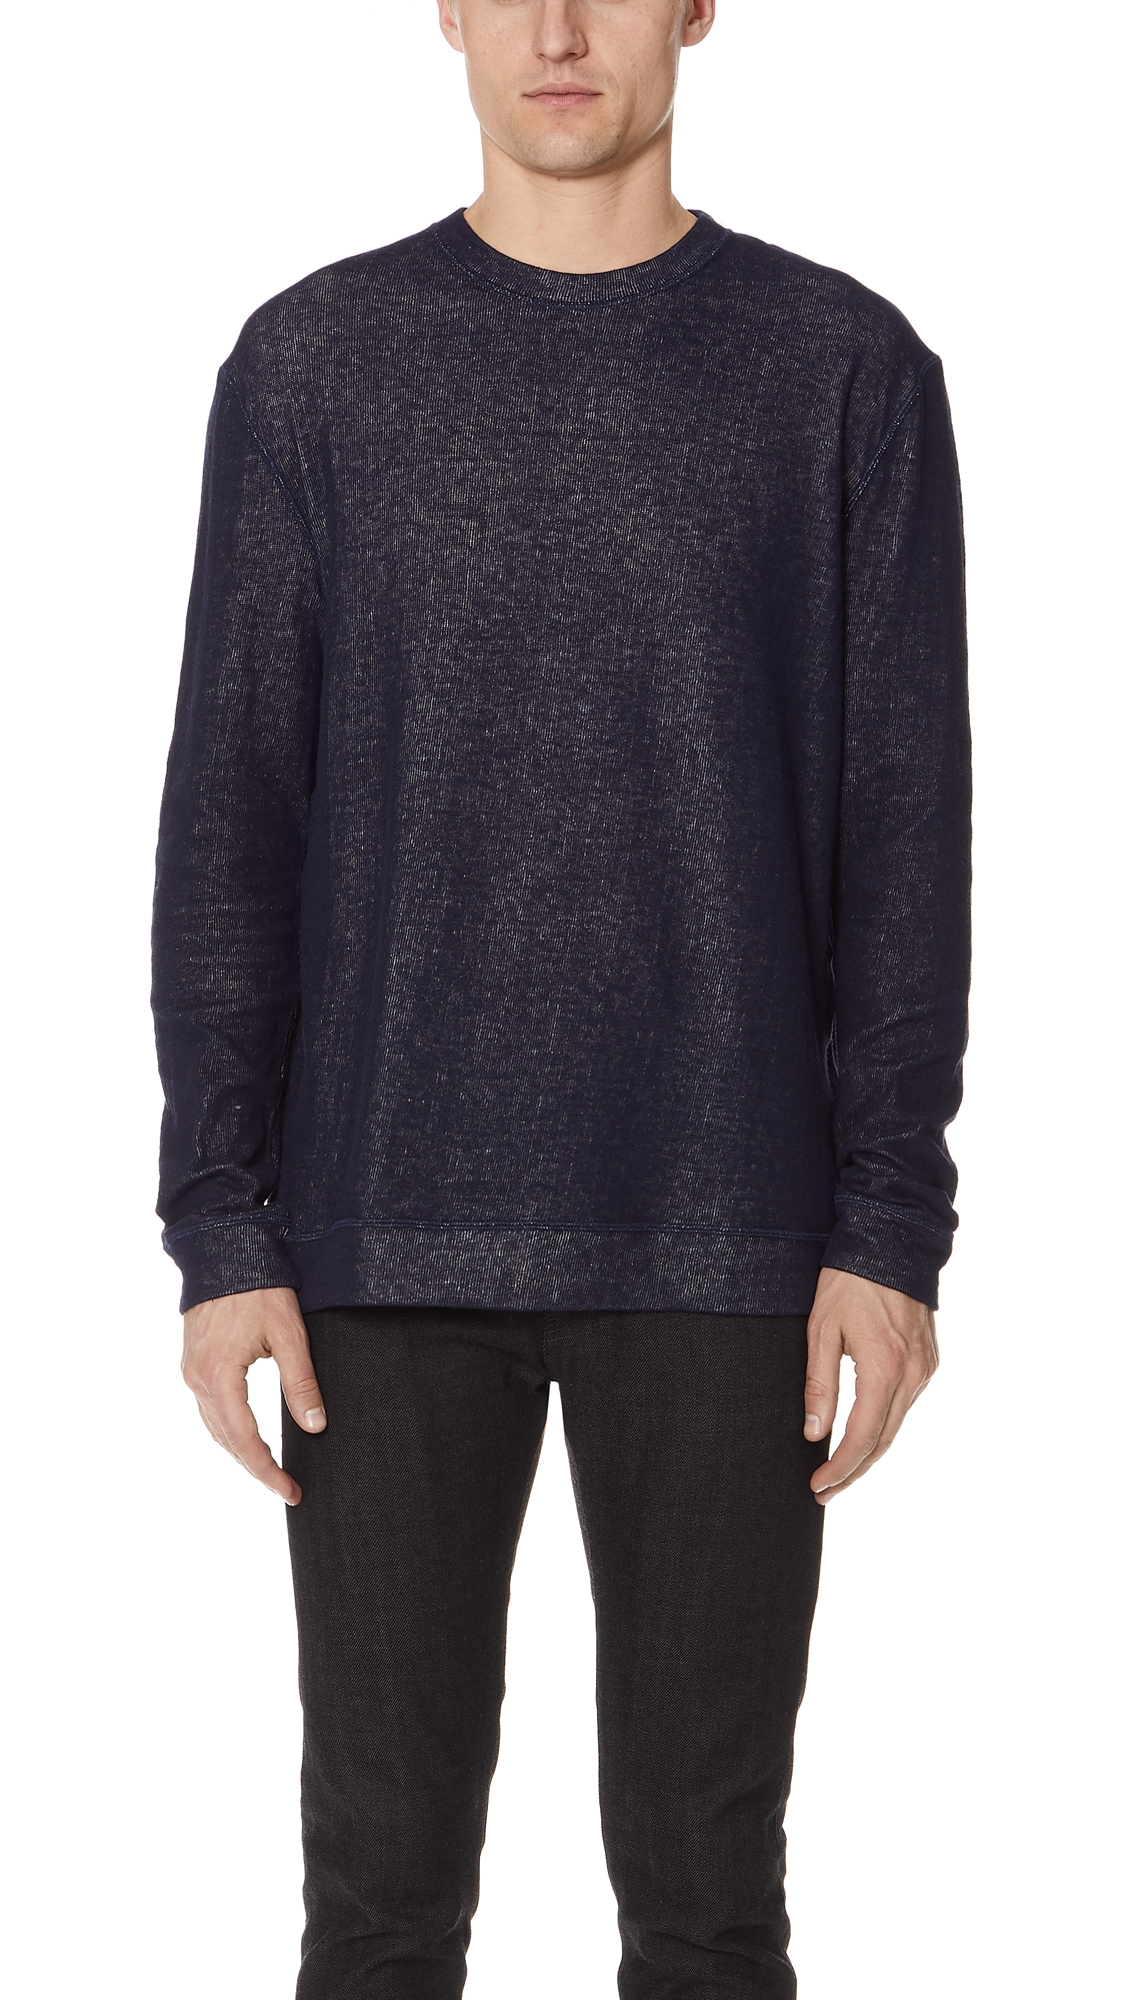 NAKED & FAMOUS SLIM DOUBLE FACED SWEATER